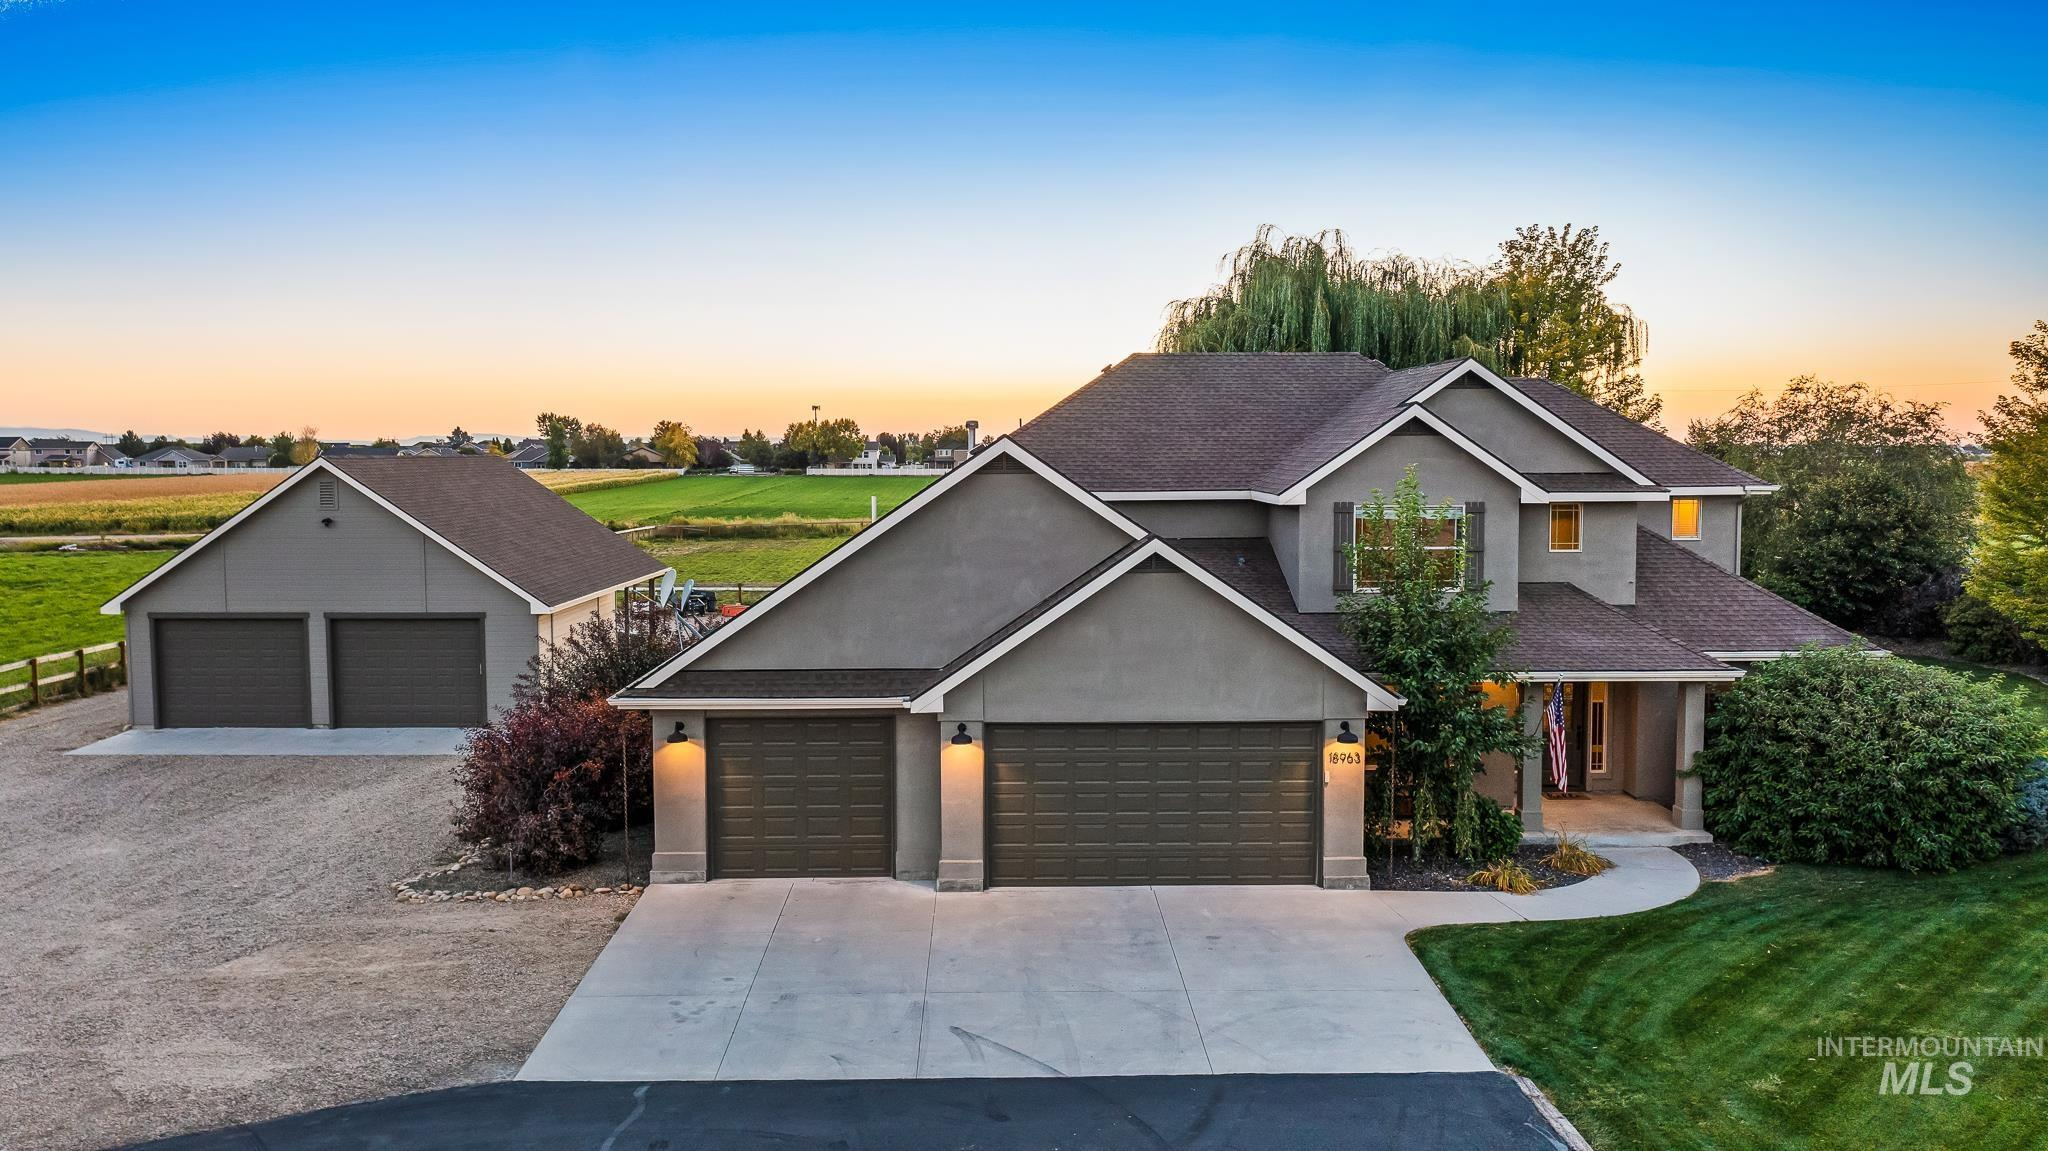 Bring your horses, pool toys, & semi- haulers! This country estate, sitting on a year round creek, features an in-ground pool w/powered, locking cover, irrigated horse pasture & tack room, 4 car garage w/ pass-through garage door & huge attic storage, plus a dream 4 car shop w/ power, a wood stove & evaporative cooler. Immaculately maintained throughout, with a flowing great room design w/wide plank LVP. Kitchen boasts stainless appliances, pantry & endless cabinets, formal & casual dining. Master offers dual vanities, soaker tub & separate walk-in shower. 2nd master features en-suite & all bedrooms have oversized walk-in closets. Professionally landscaped to create a private oasis w/water feature, pond & willow trees. Water softener & central vac are included. - Sheila A Smith, Voice: 208-631-2248, RE/MAX Capital City, Main: 208-344-7477, http://www.SheilaSmithRealEstate.com